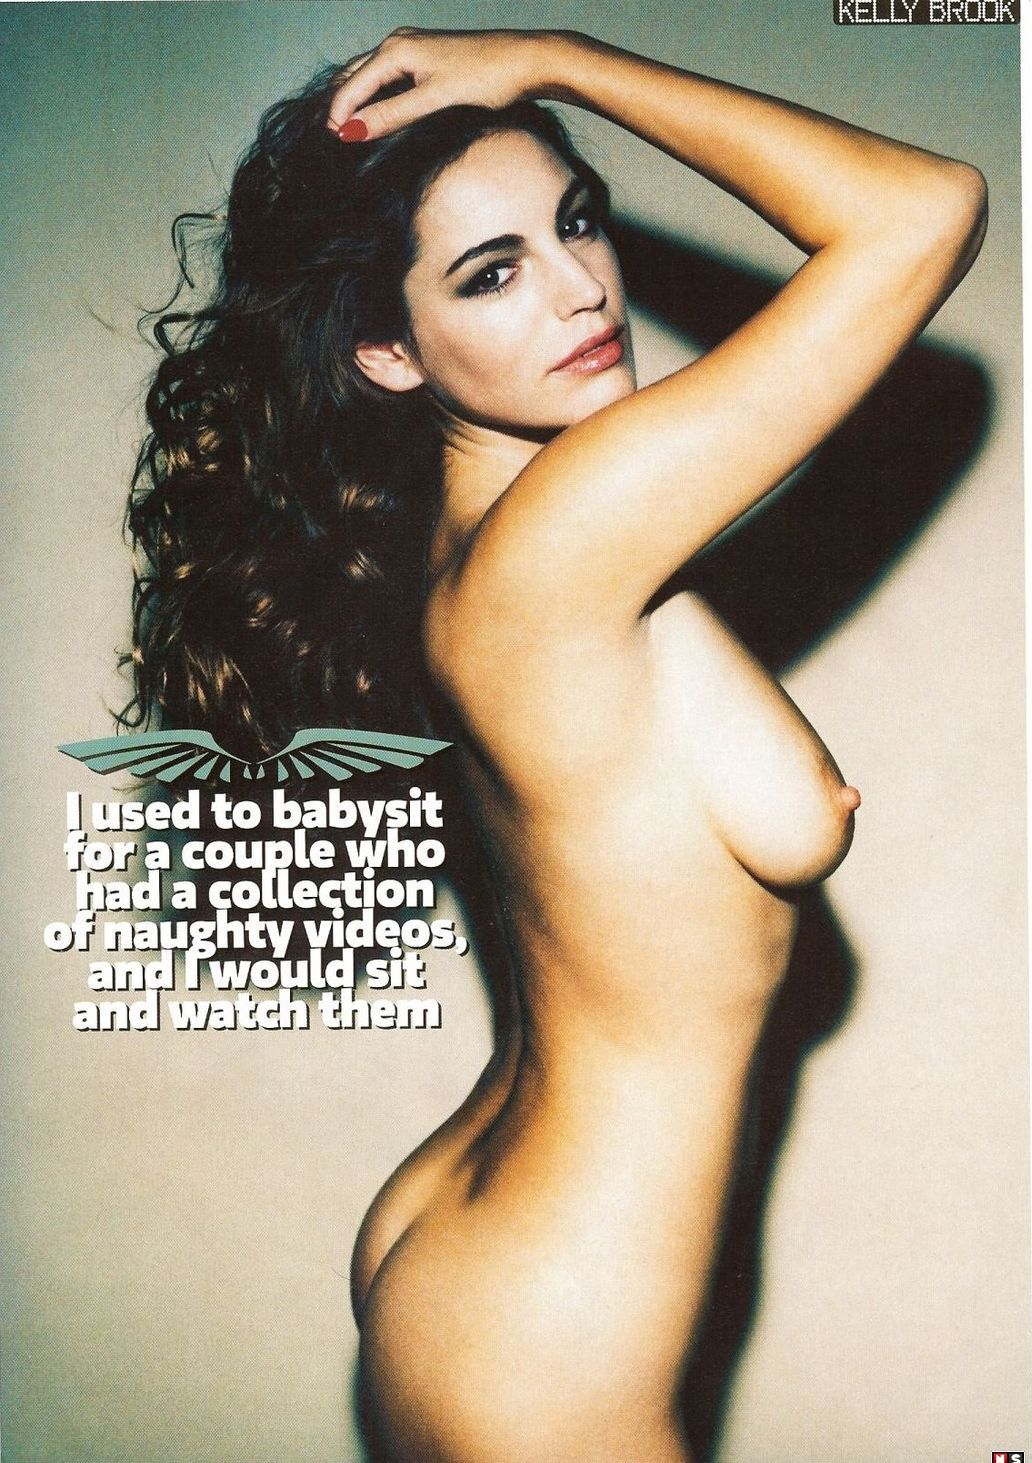 kelly brook fully nude fat bbw anal. fat bbw anal picture of black bbw fucking hardcock